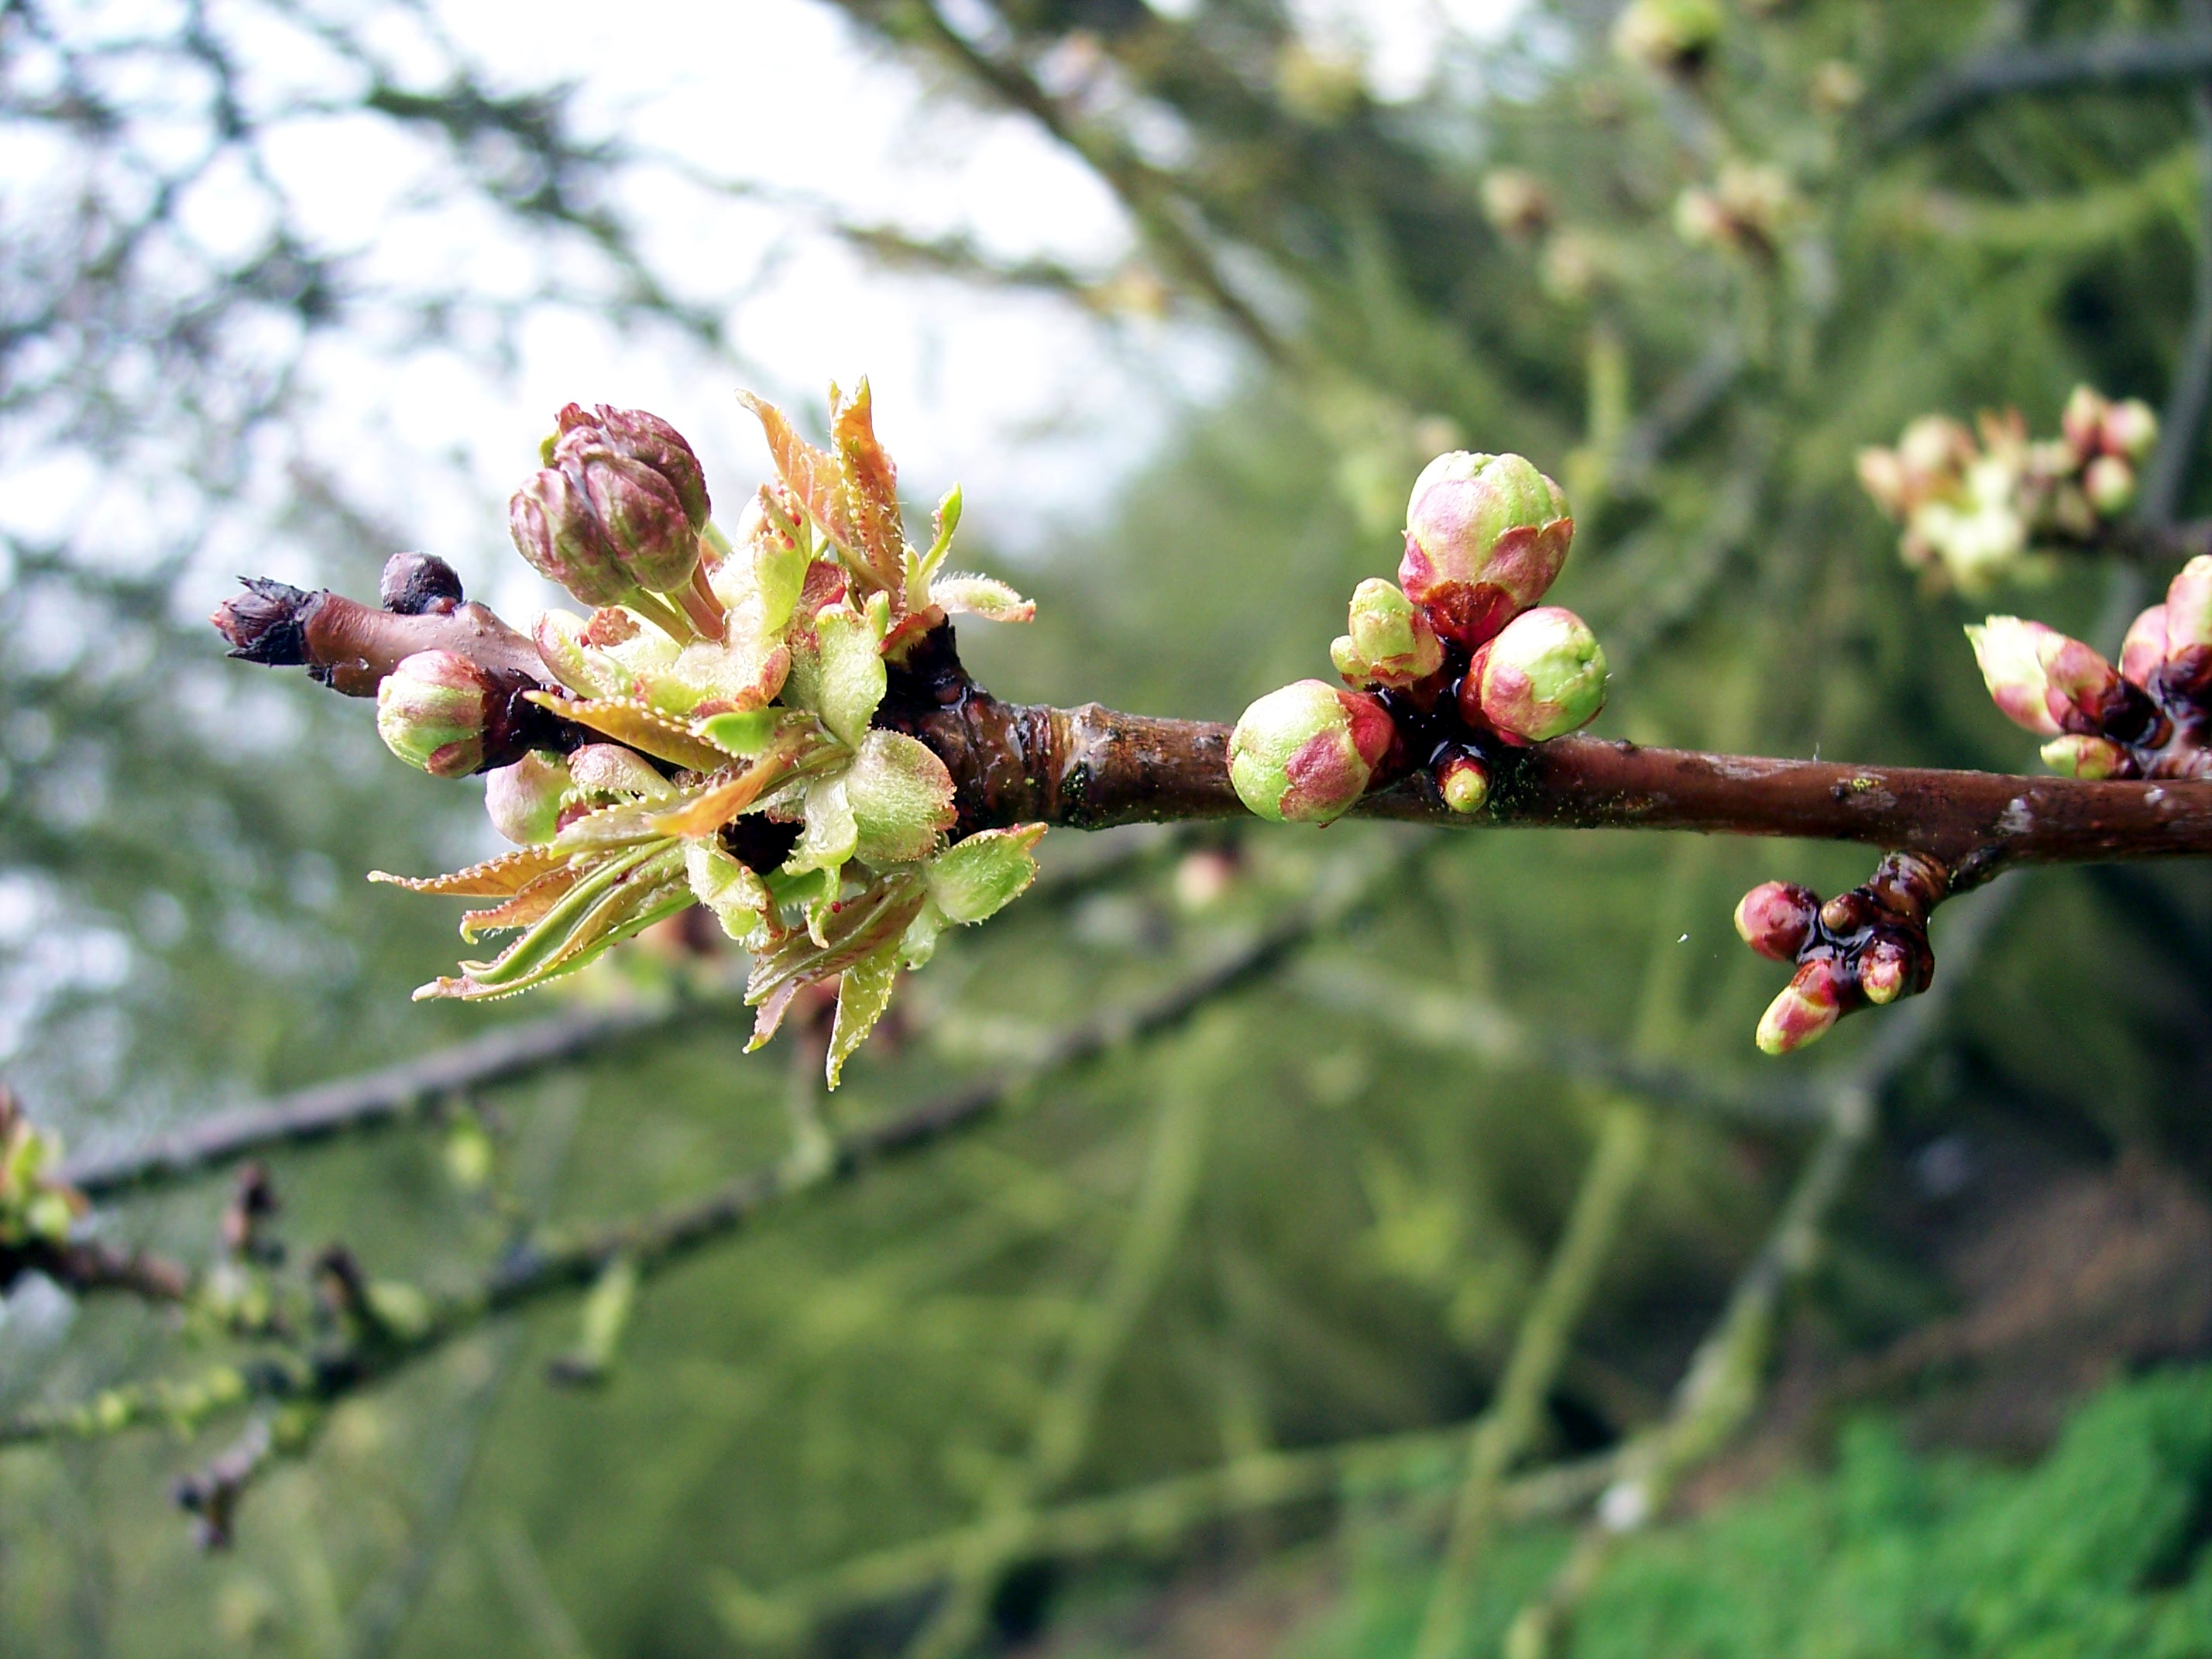 A tree that can reach 20m or more, it has purple-grey, shiny, peeling horizontally bark. Open grown trees have conical crowns. The buds are large, pointed and russet against grey twigs. They burst in April producing leaves that are initially brown but soon turn green. The leaves have two prominent k...